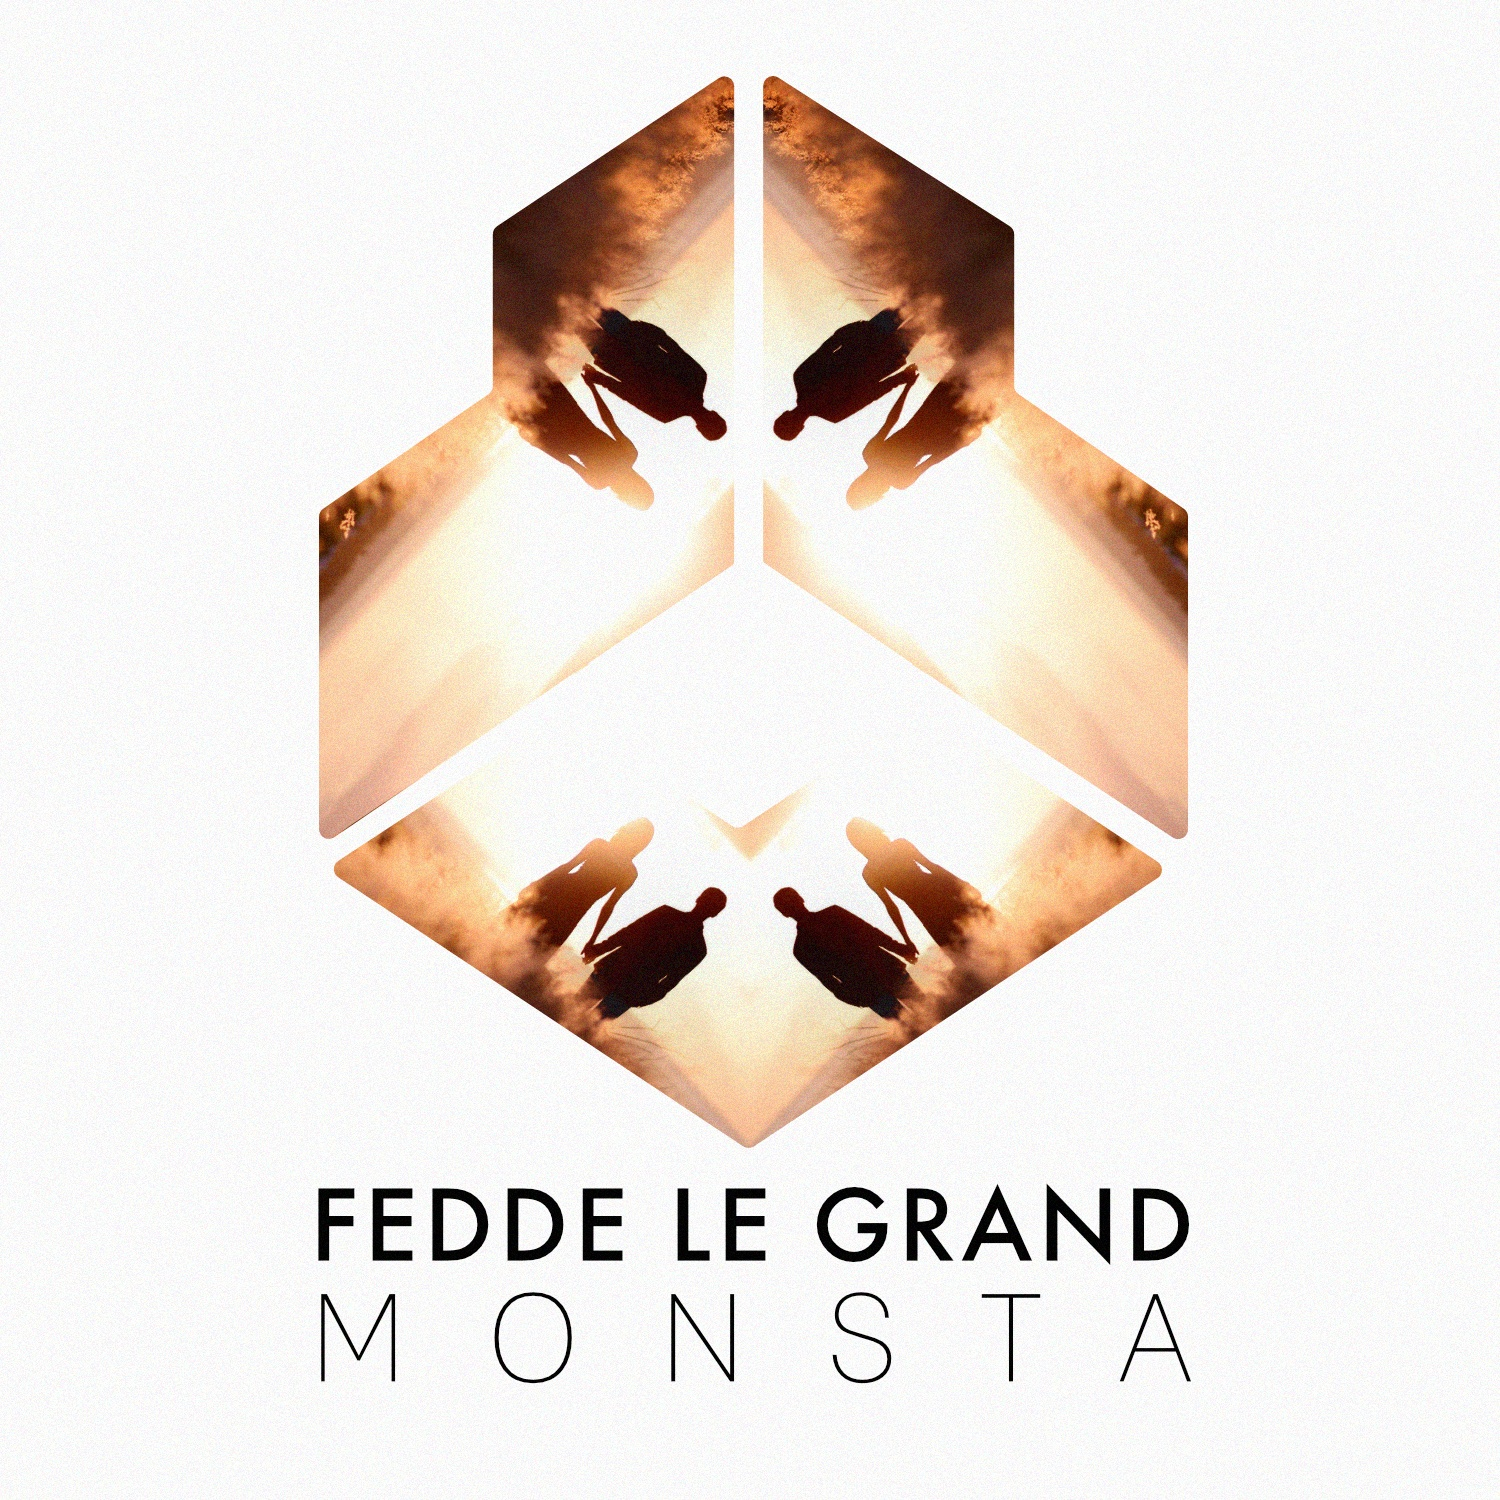 Fedde Le Grand - Monsta [OUT VIA DARKLIGHT RECORDINGS]